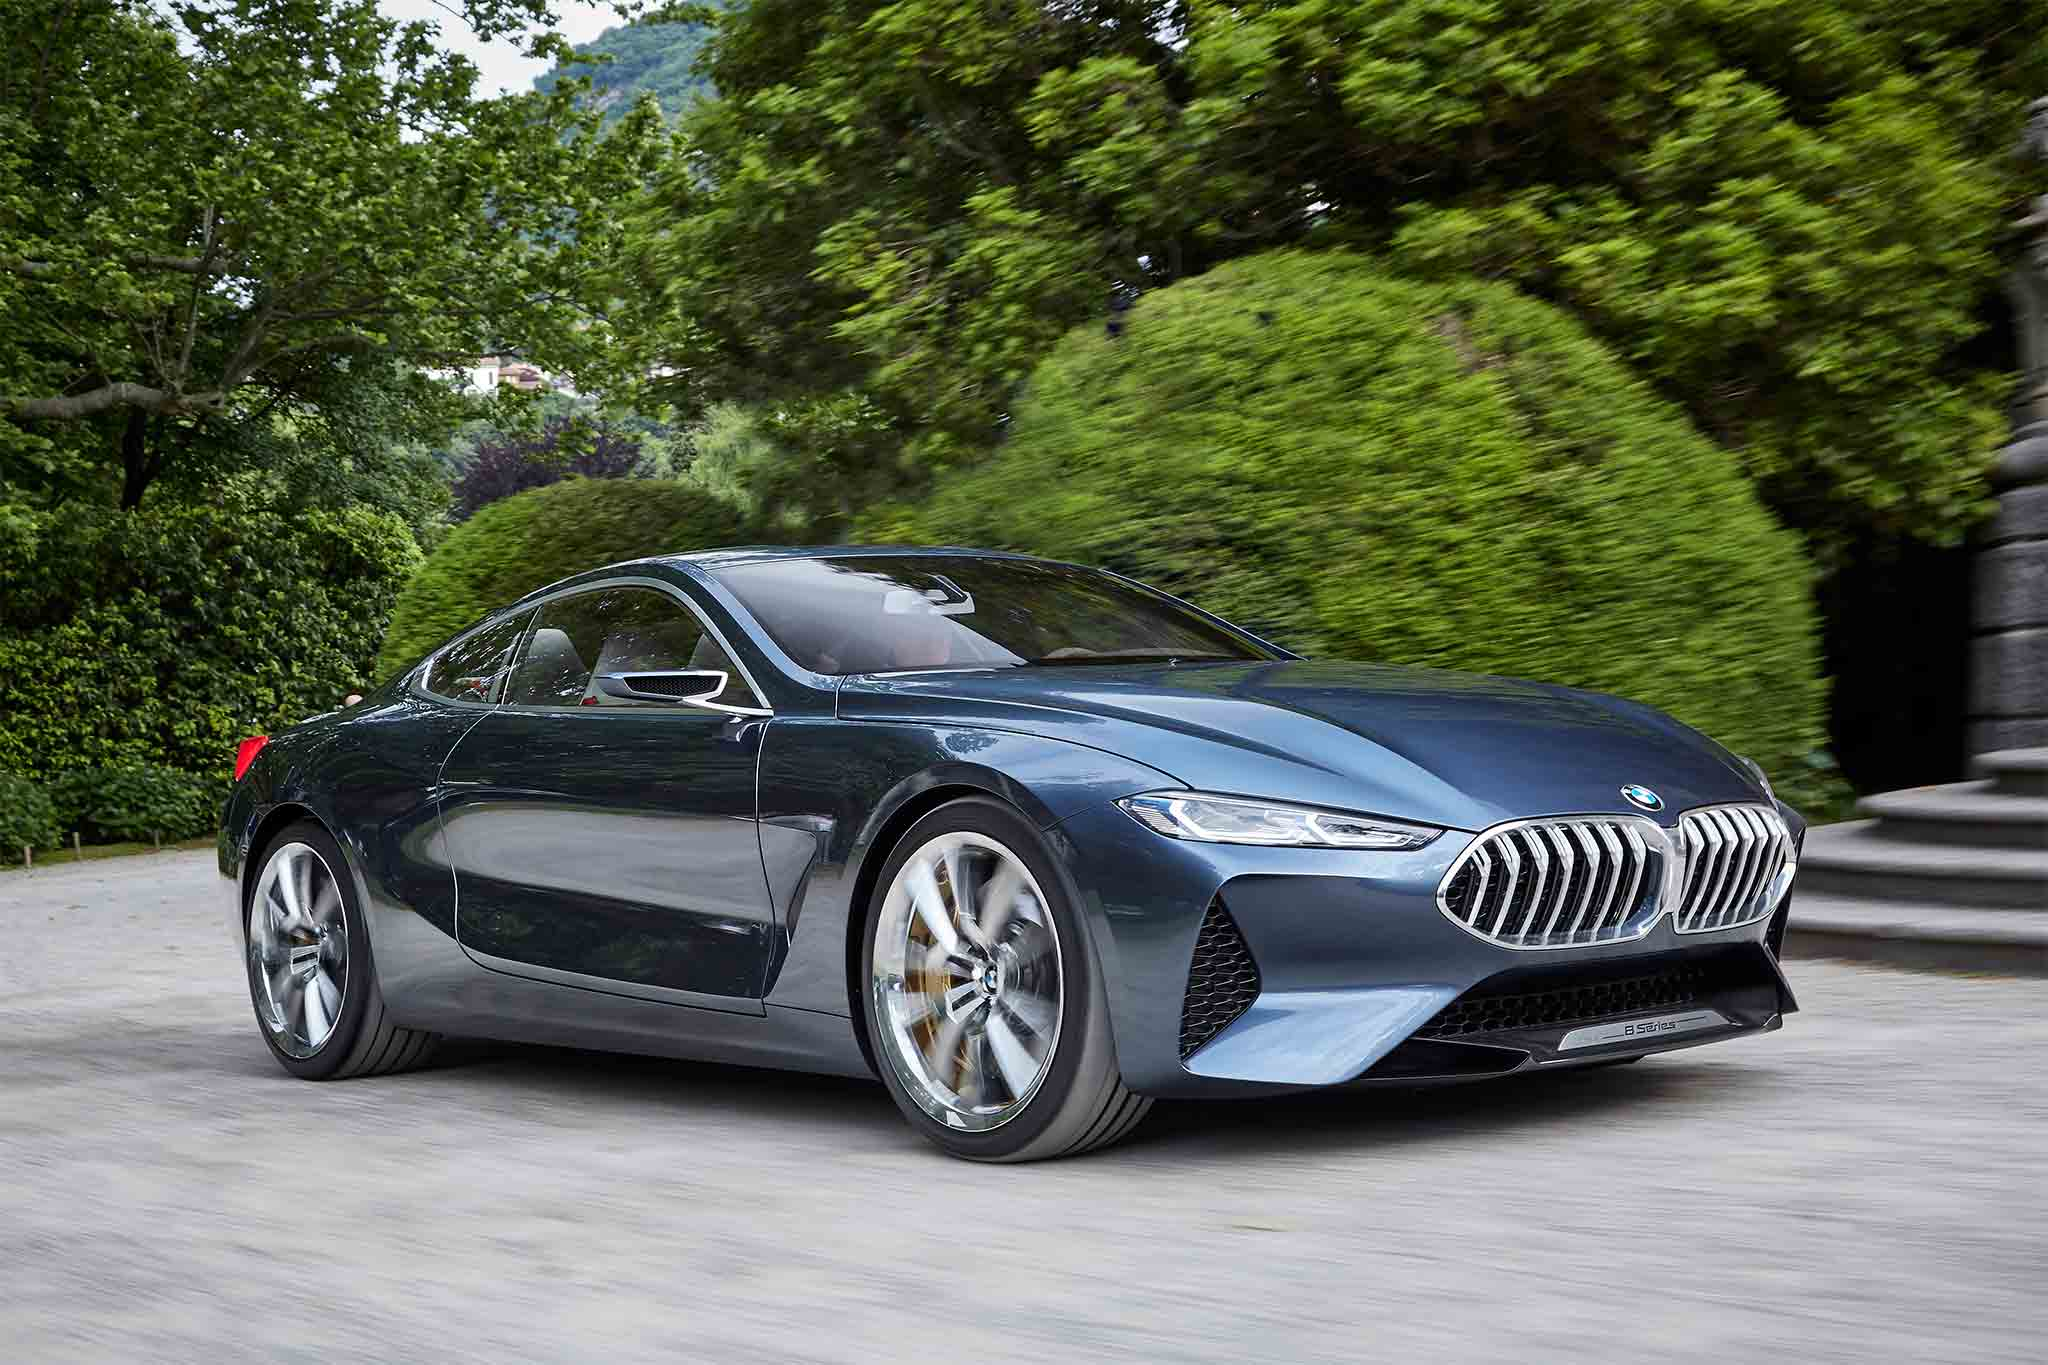 Exclusive: BMW 8 Series Concept Quick Drive | Automobile ...